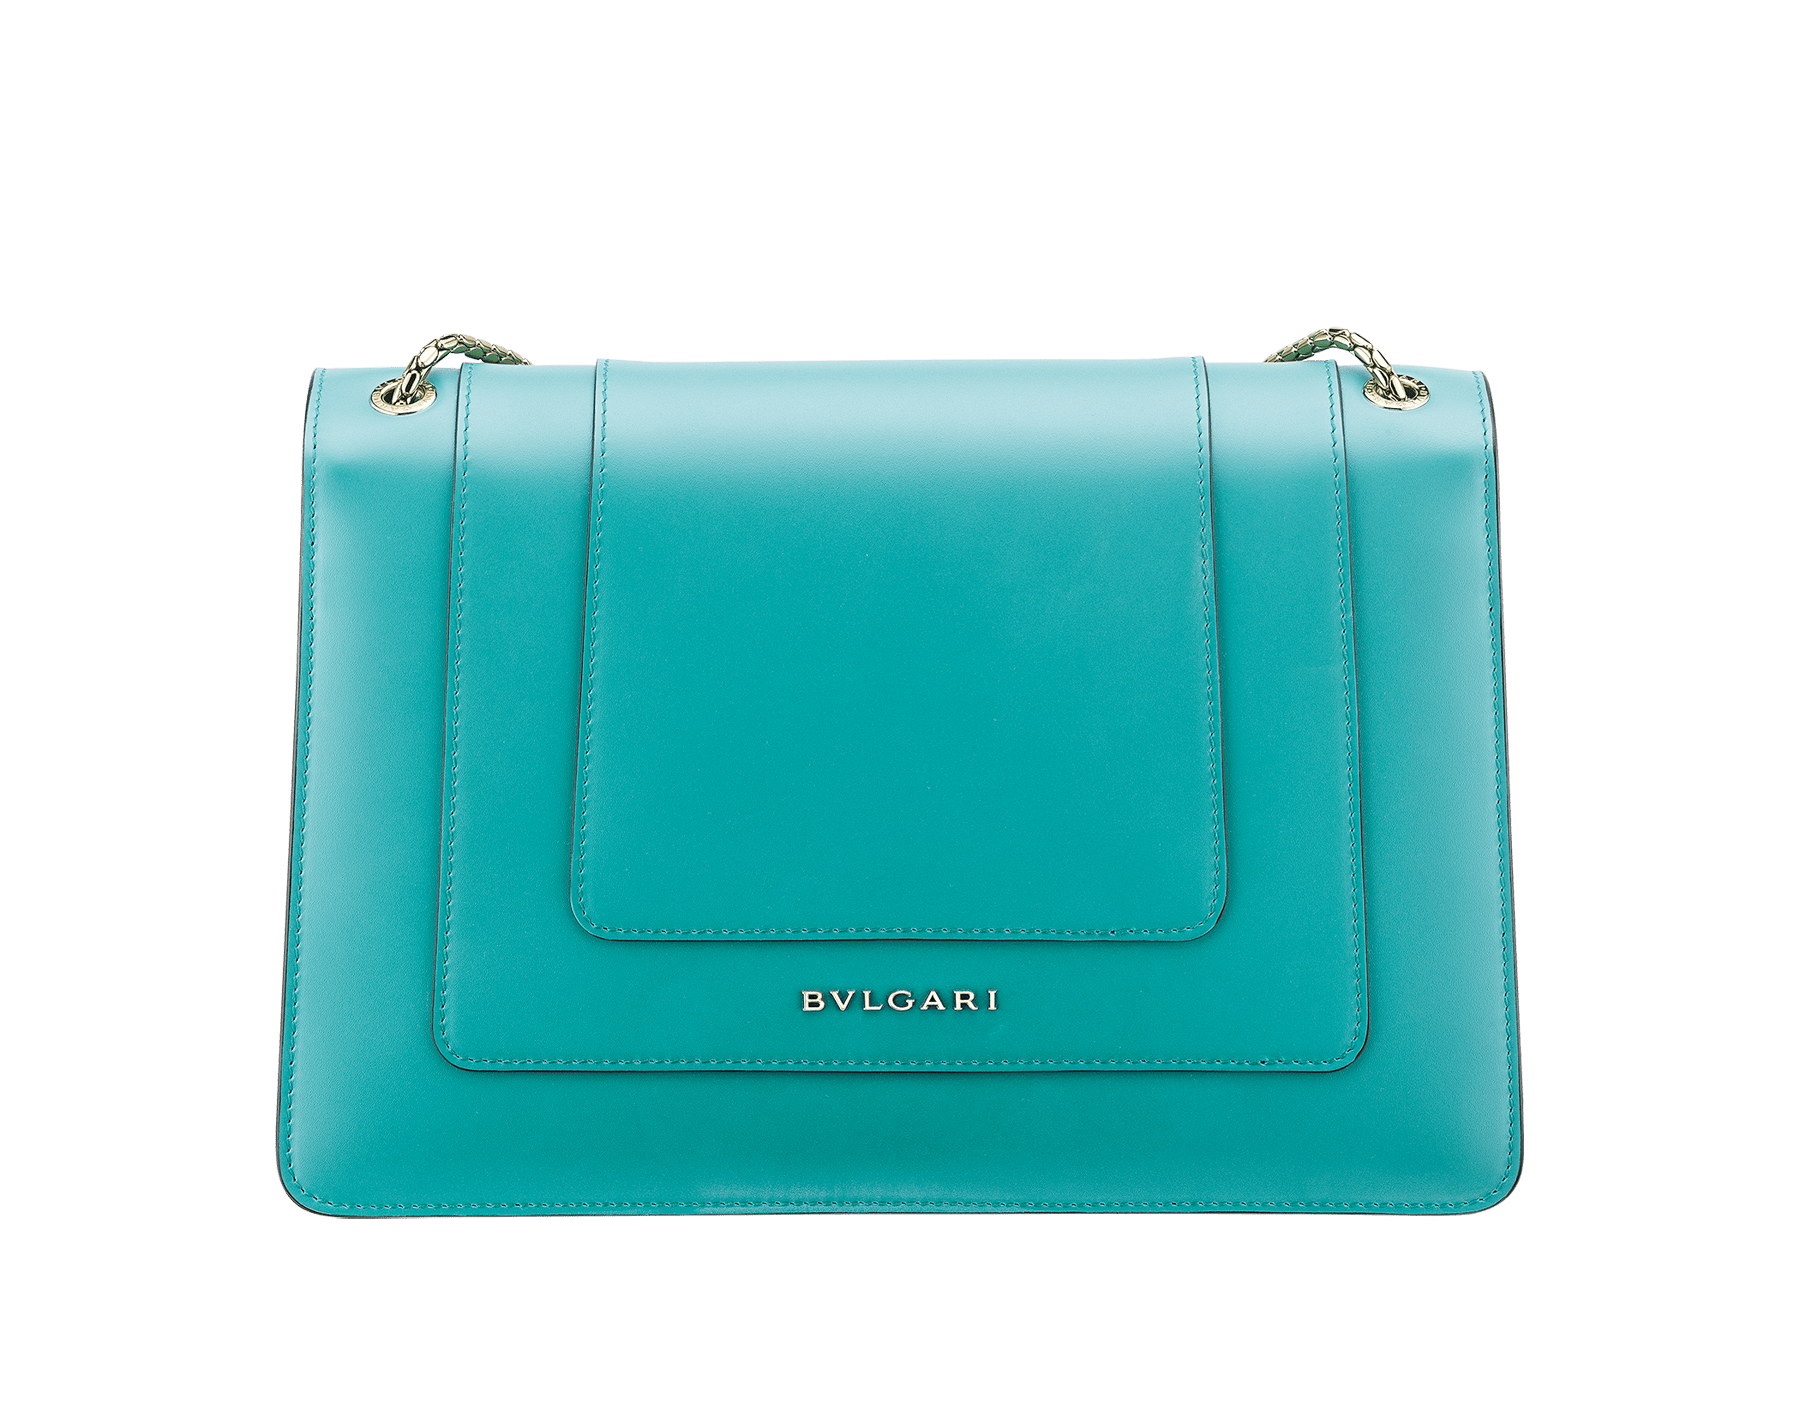 Serpenti Forever shoulder bag in arctic jade calf leather. Iconic snakehead closure in light gold plated brass embellished with black and white enamel and green malachite eyes. 288701 image 3